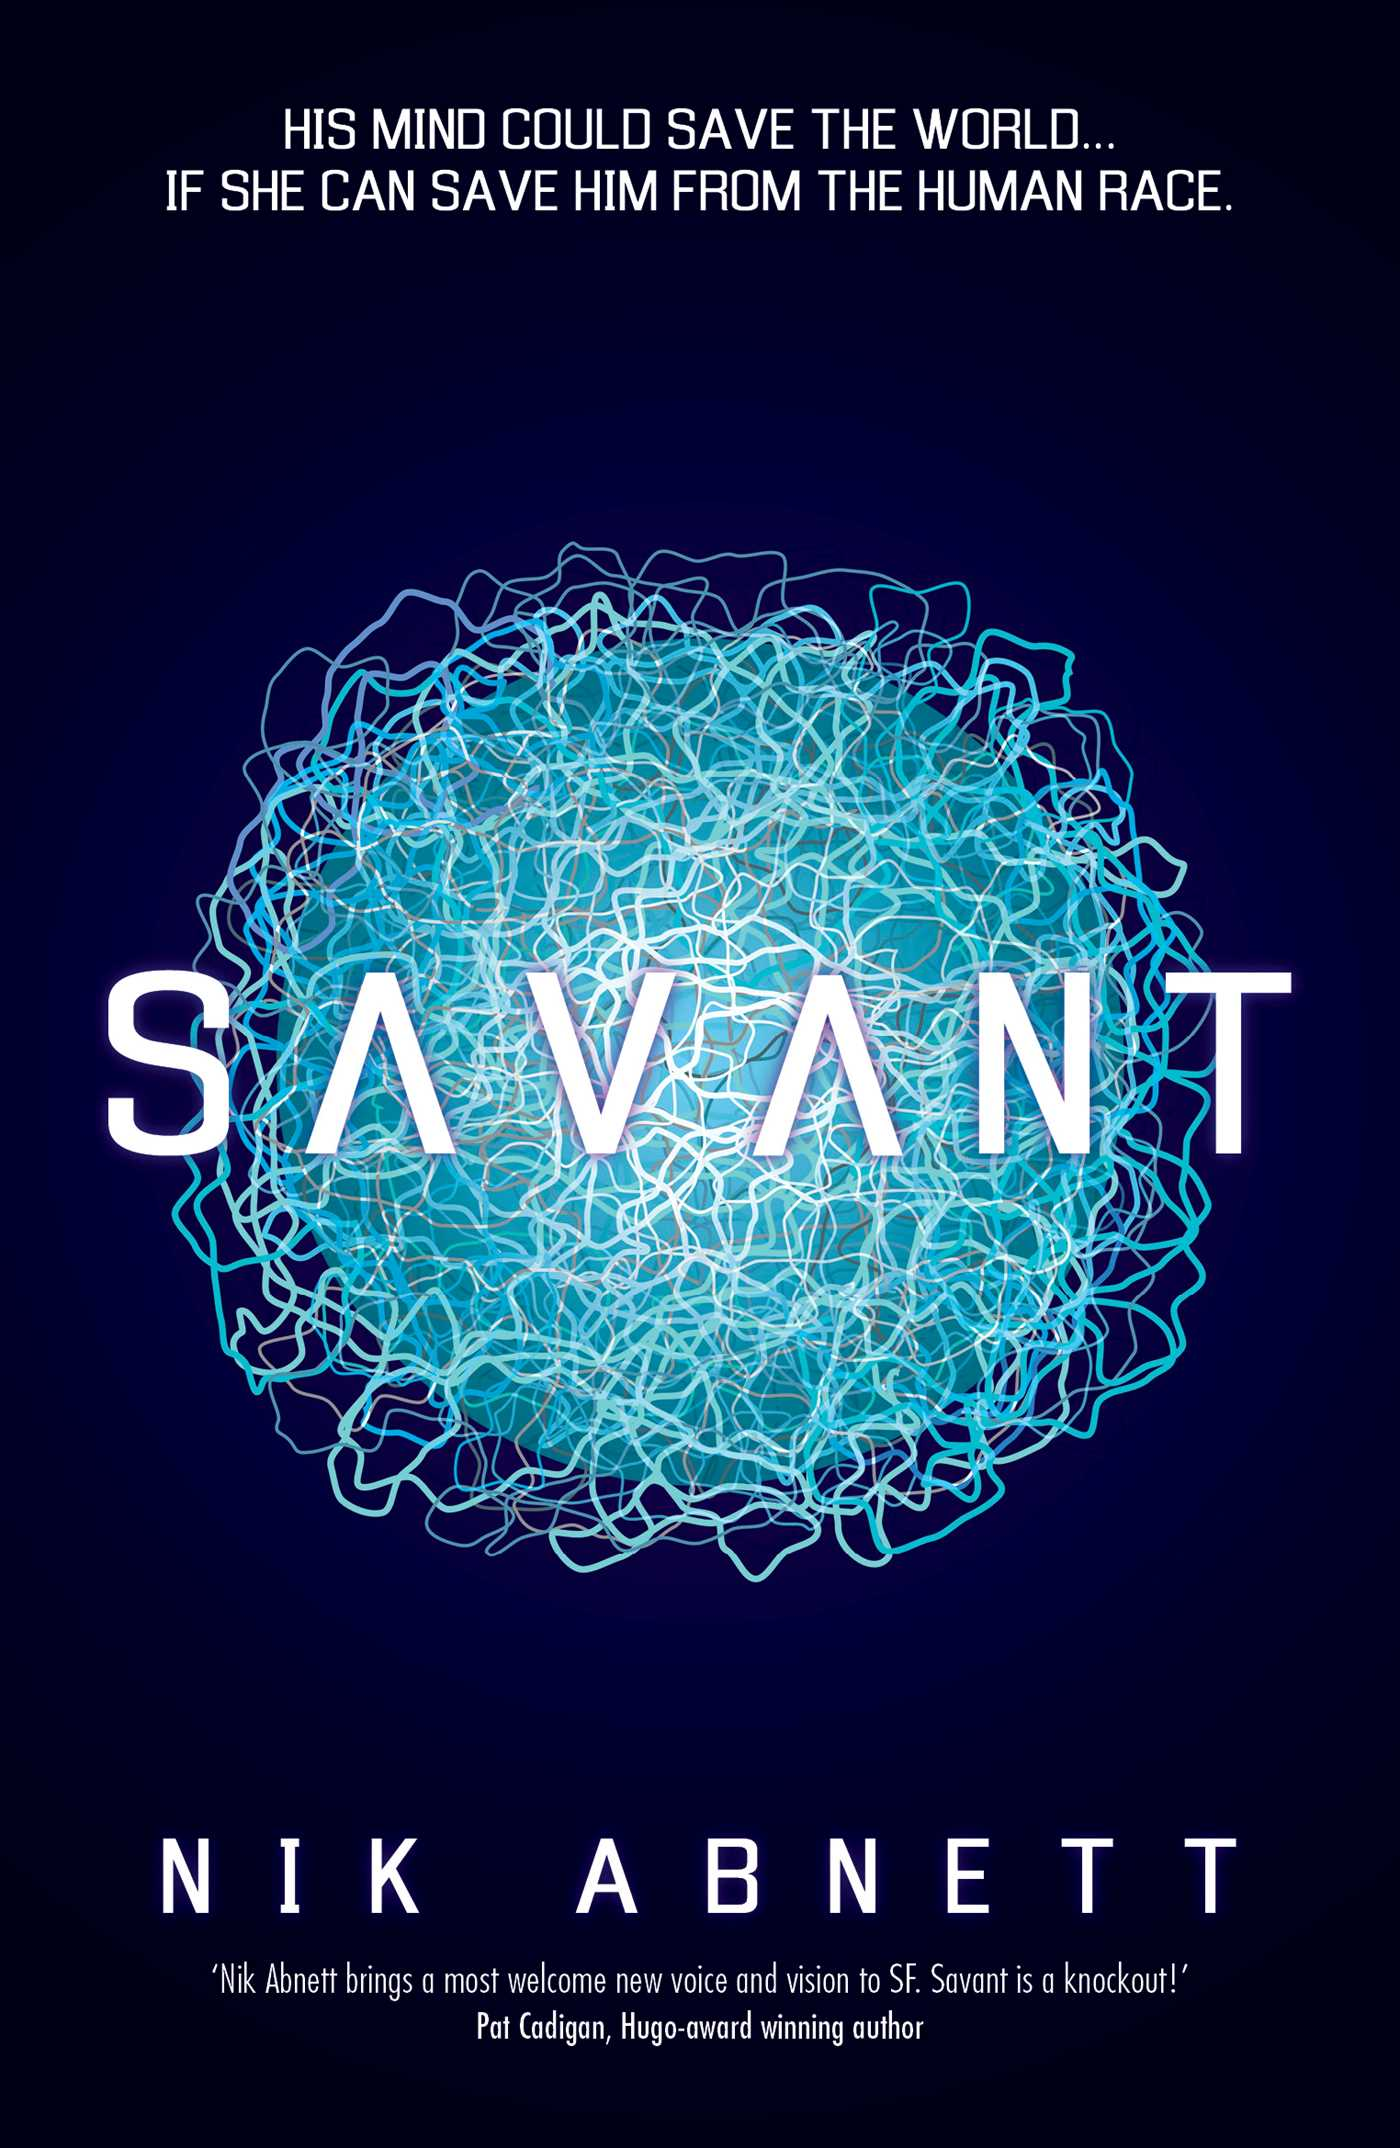 Nik Abnett: Five Things I Learned Writing Savant